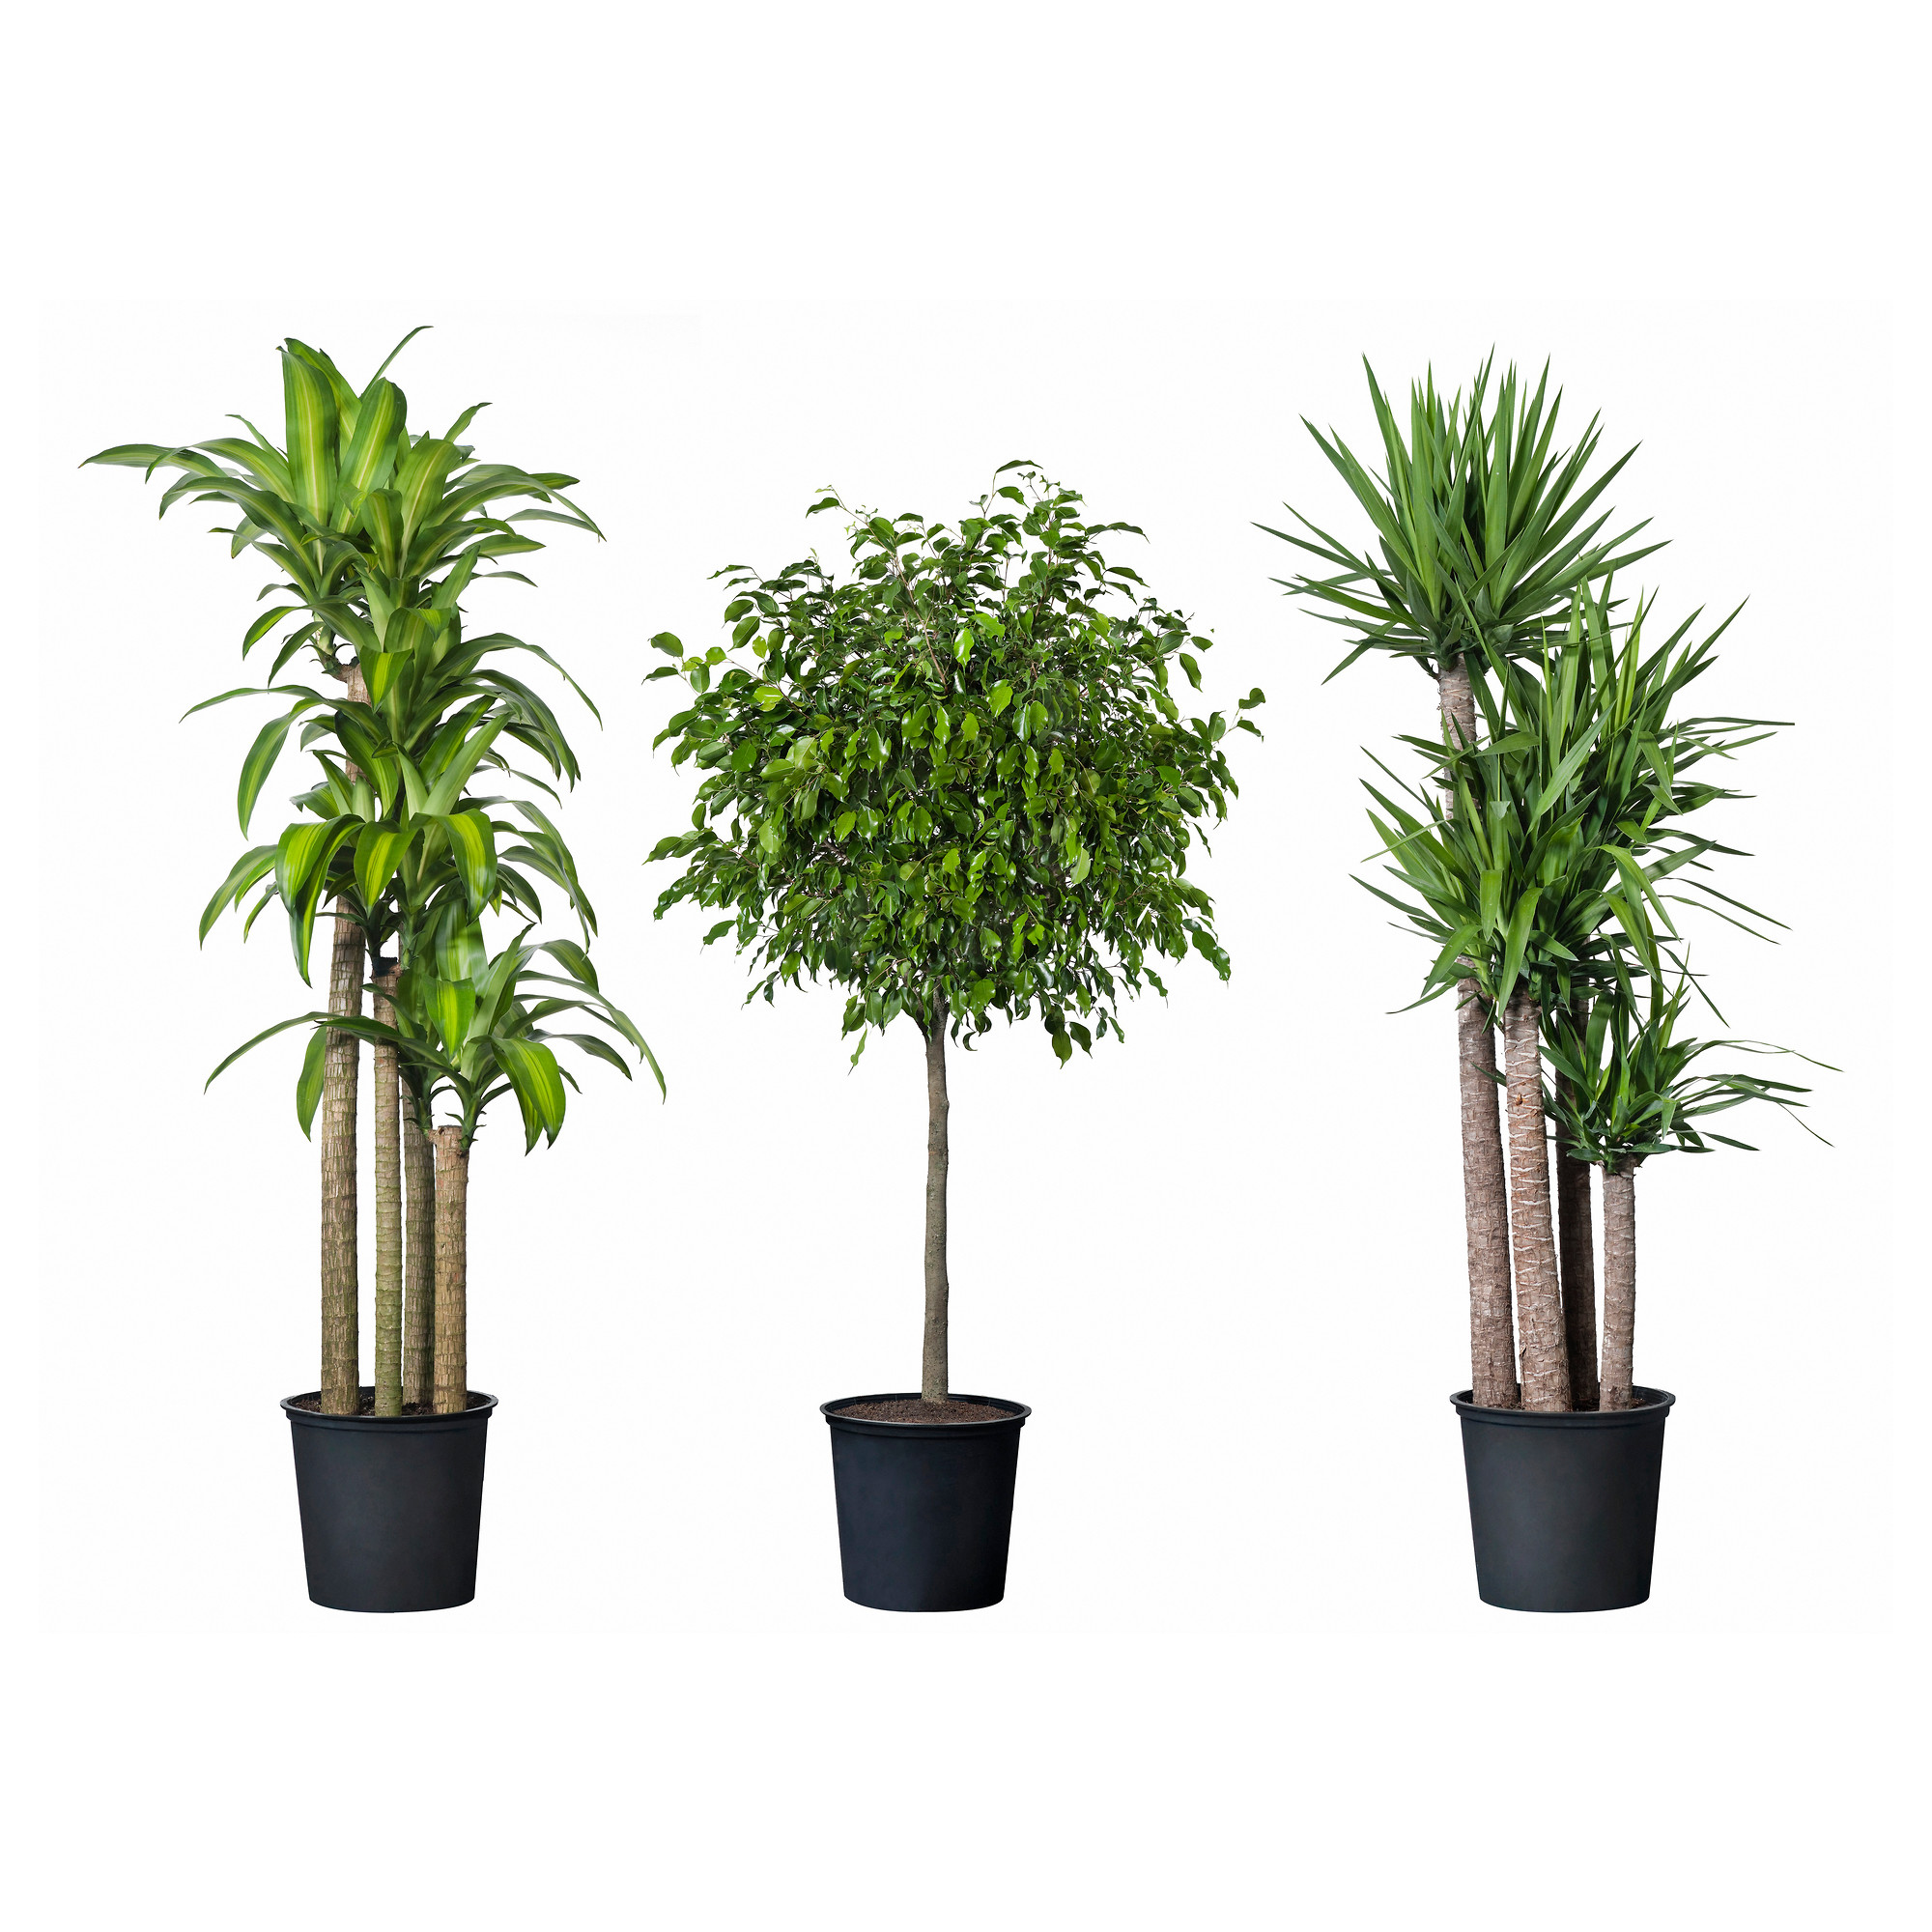 Plants for Ikea plantes